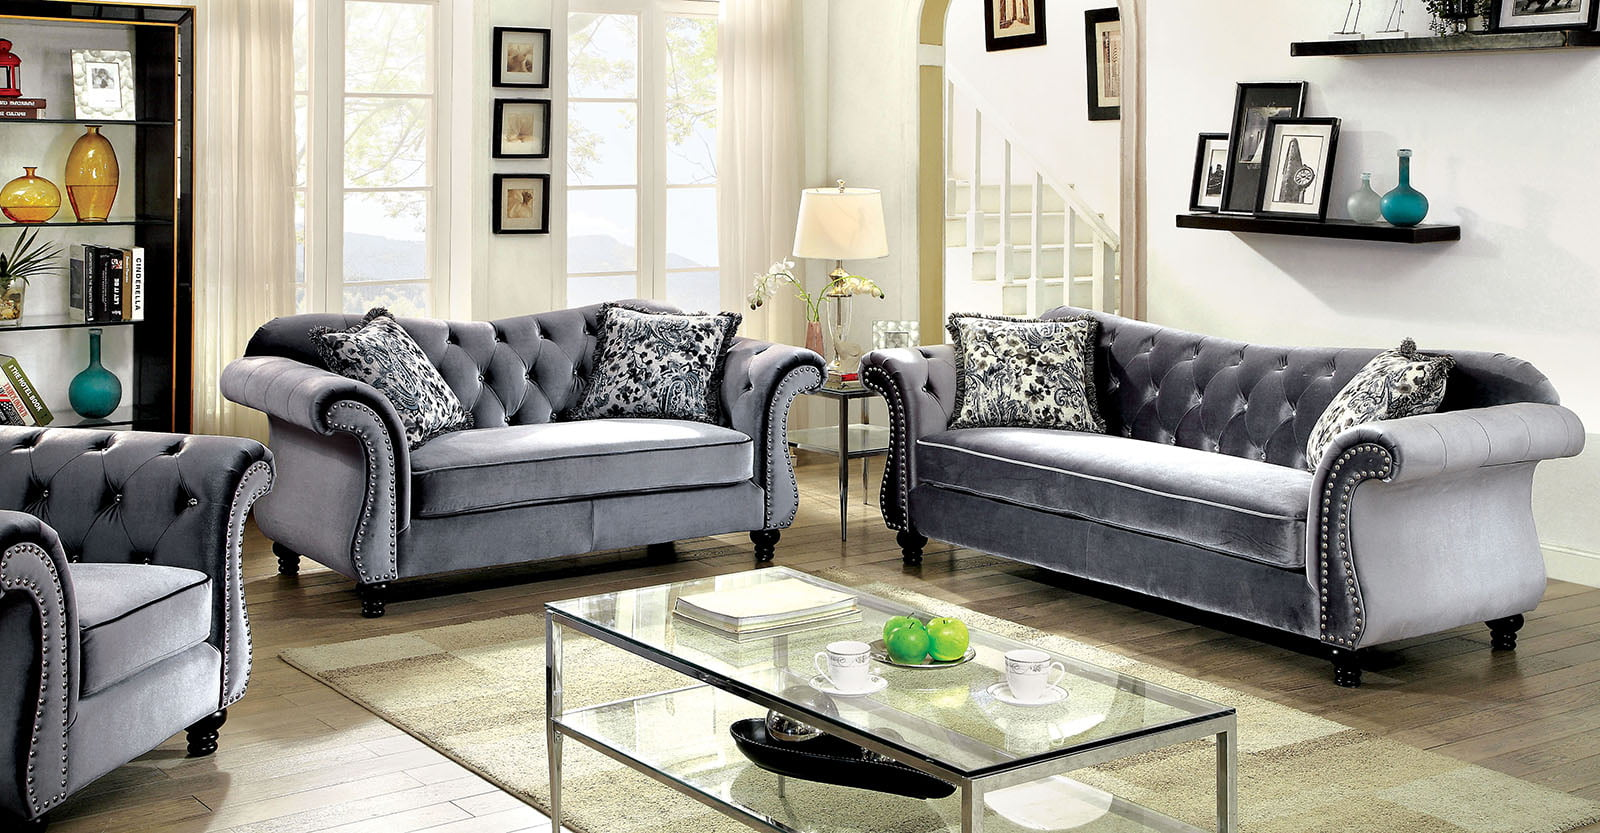 Luxurious Jolanda Sofa Set And Loveseat Grey Traditional Living Room Furniture 2pc Button Tufted Design